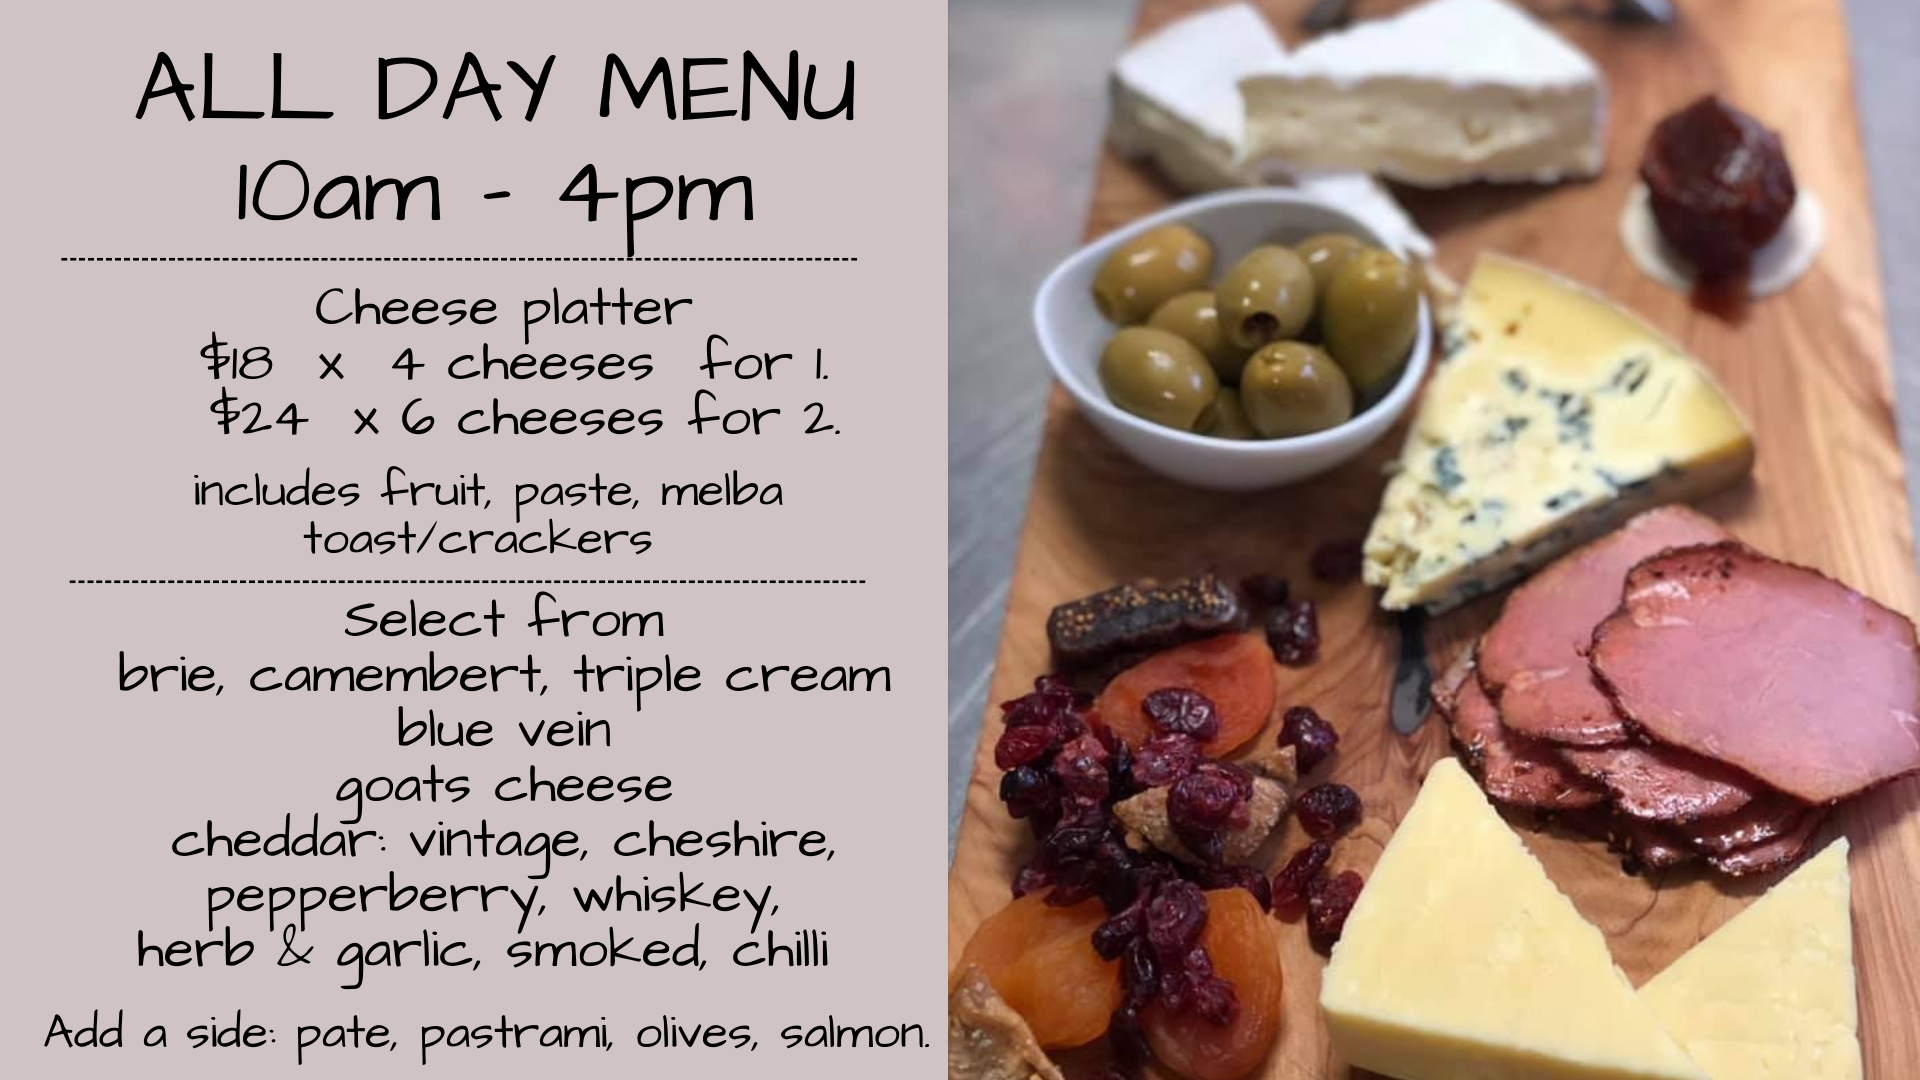 all-day-menu-01.09.2021.png